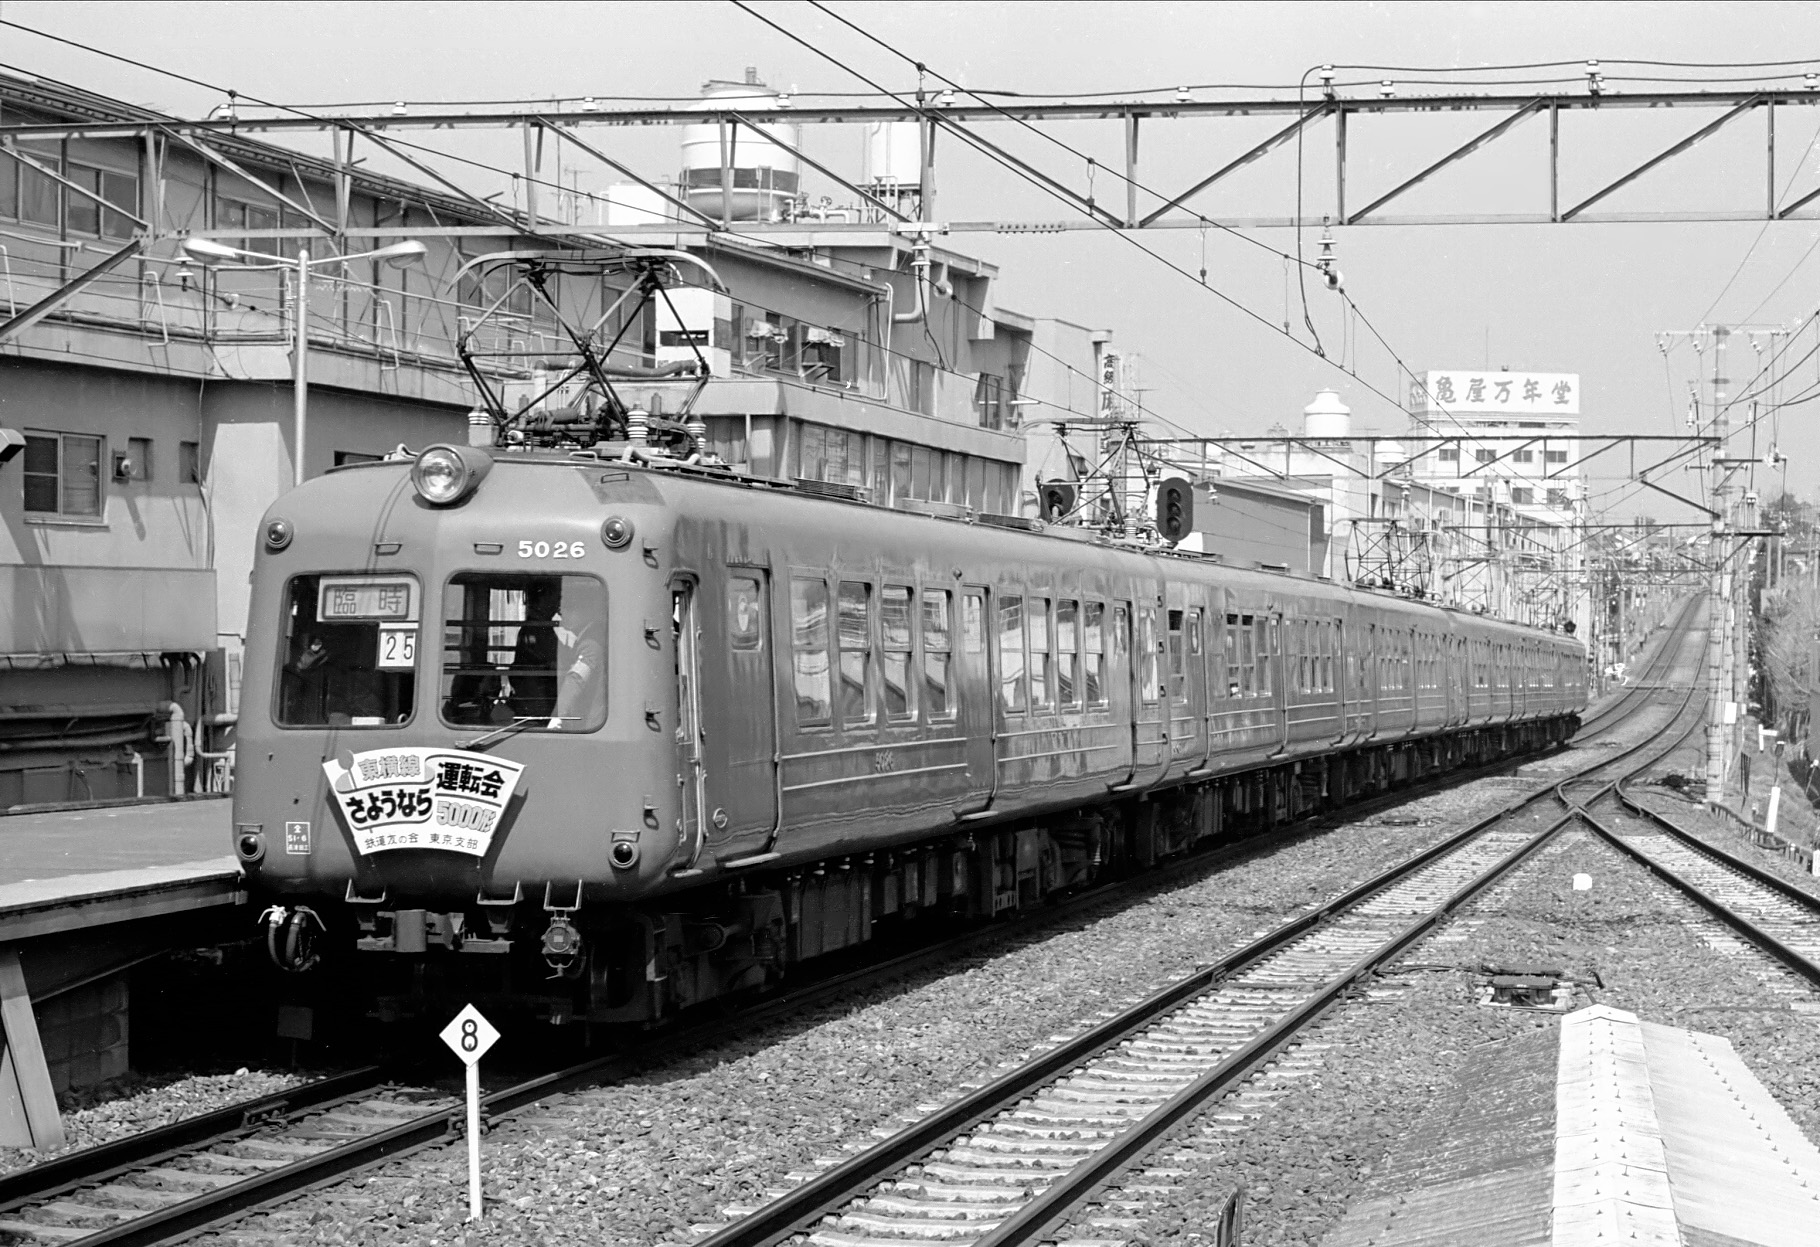 https://upload.wikimedia.org/wikipedia/commons/3/32/Tkk5000_last_run_in_toyoko_line.JPG